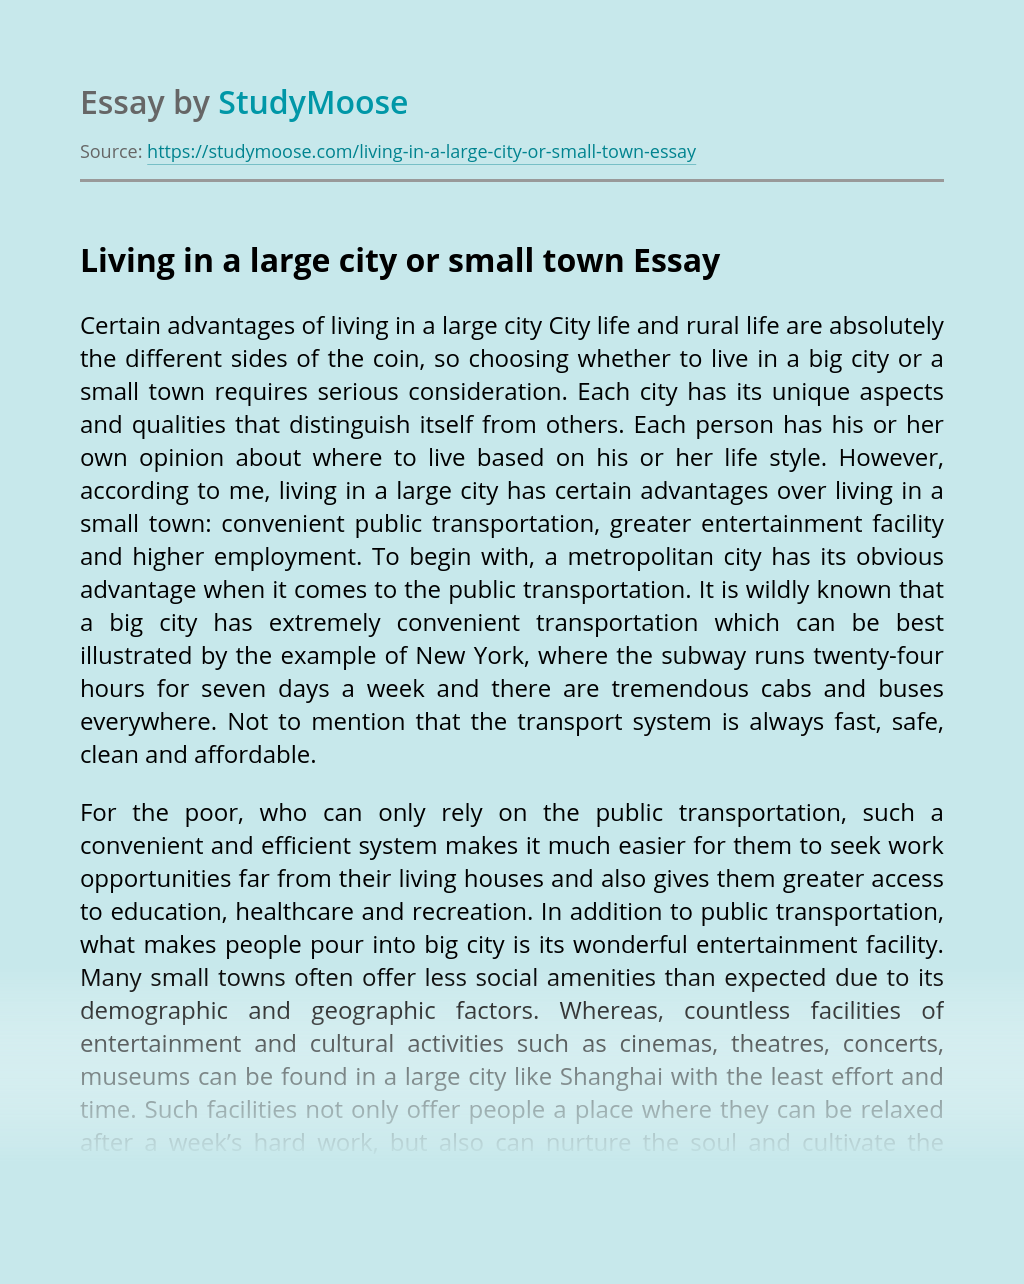 Living in a large city or small town